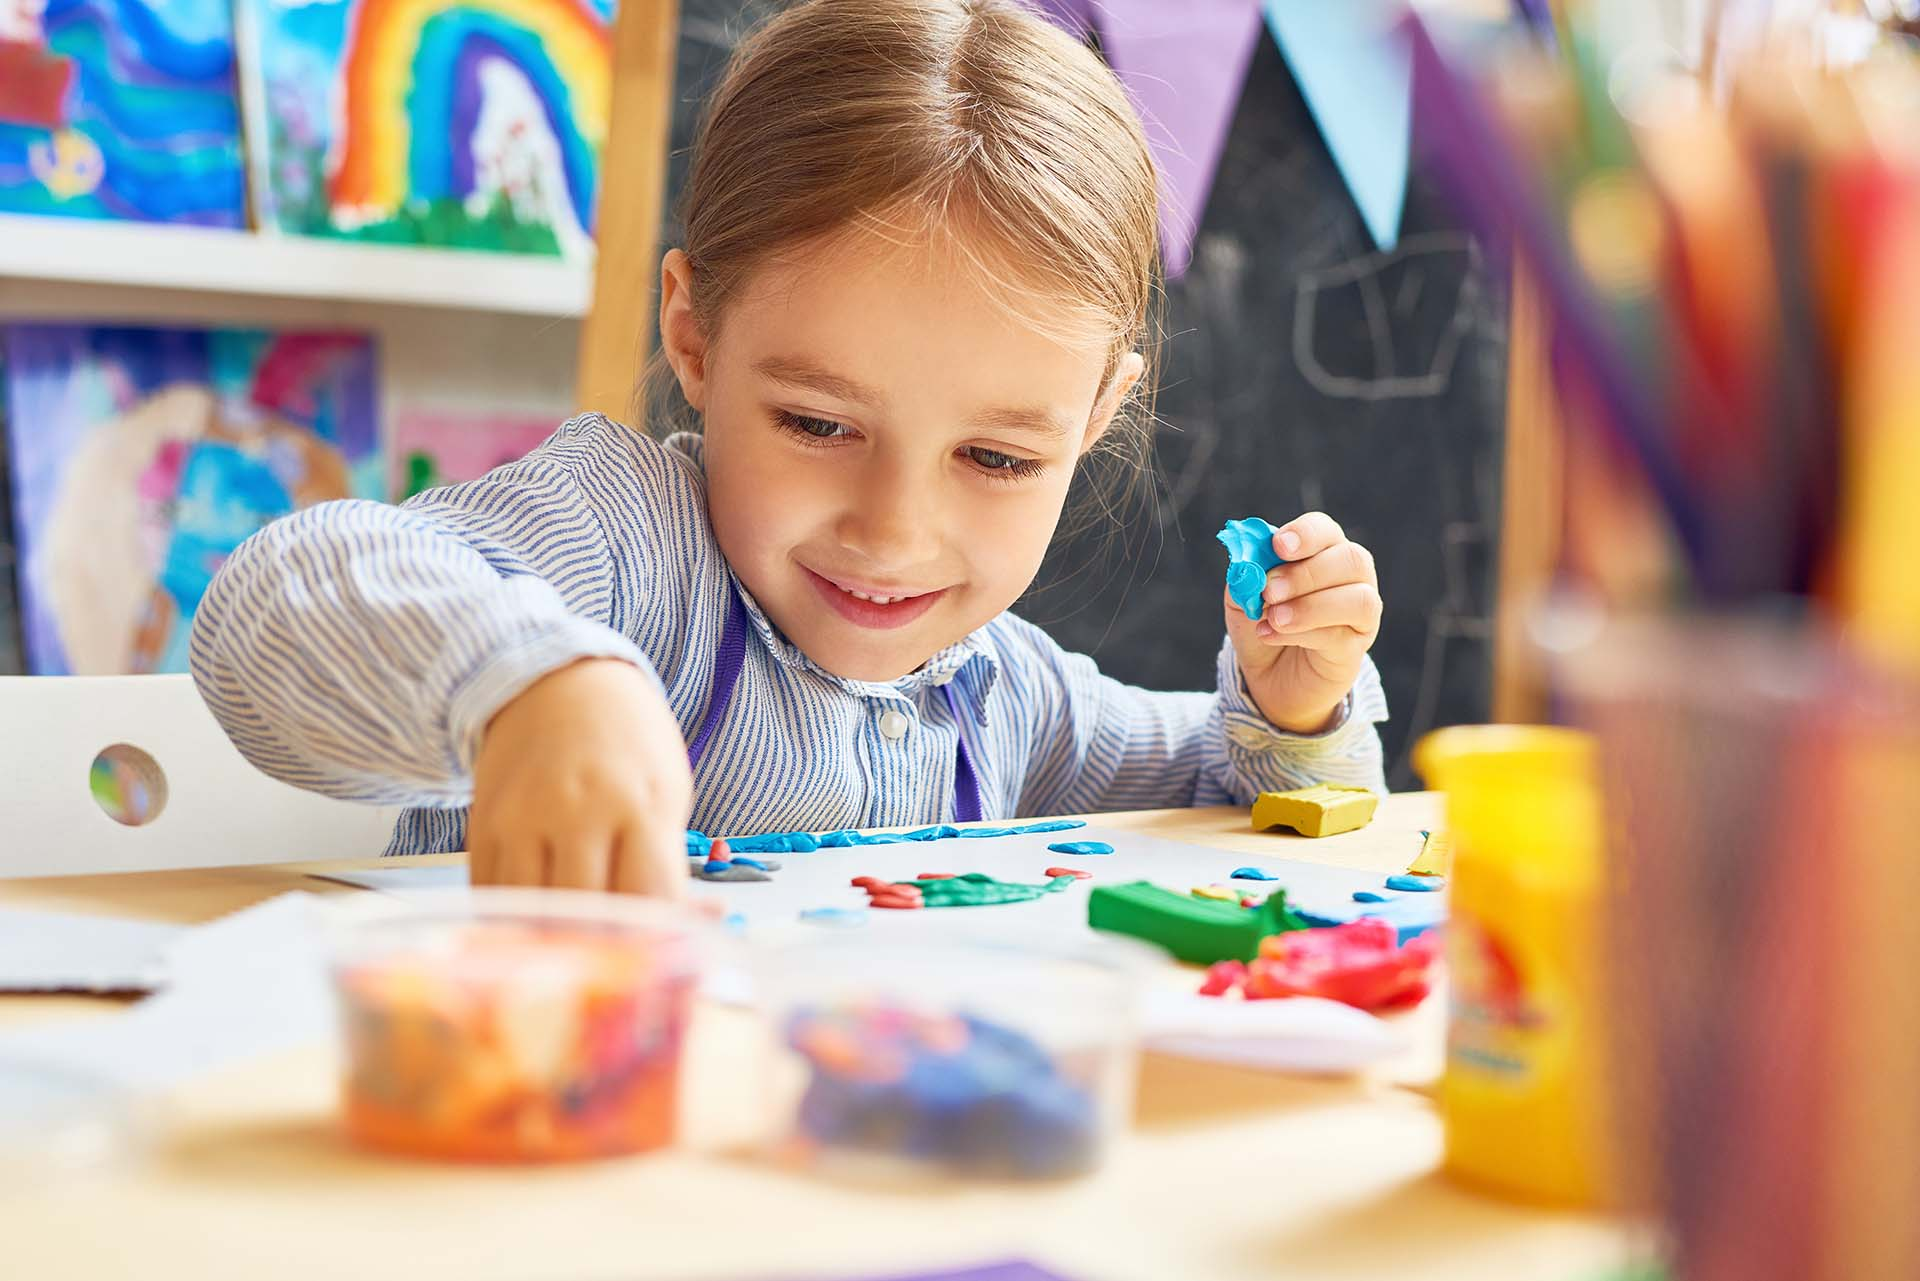 Pay for Success for ECD, preschool girl at art table